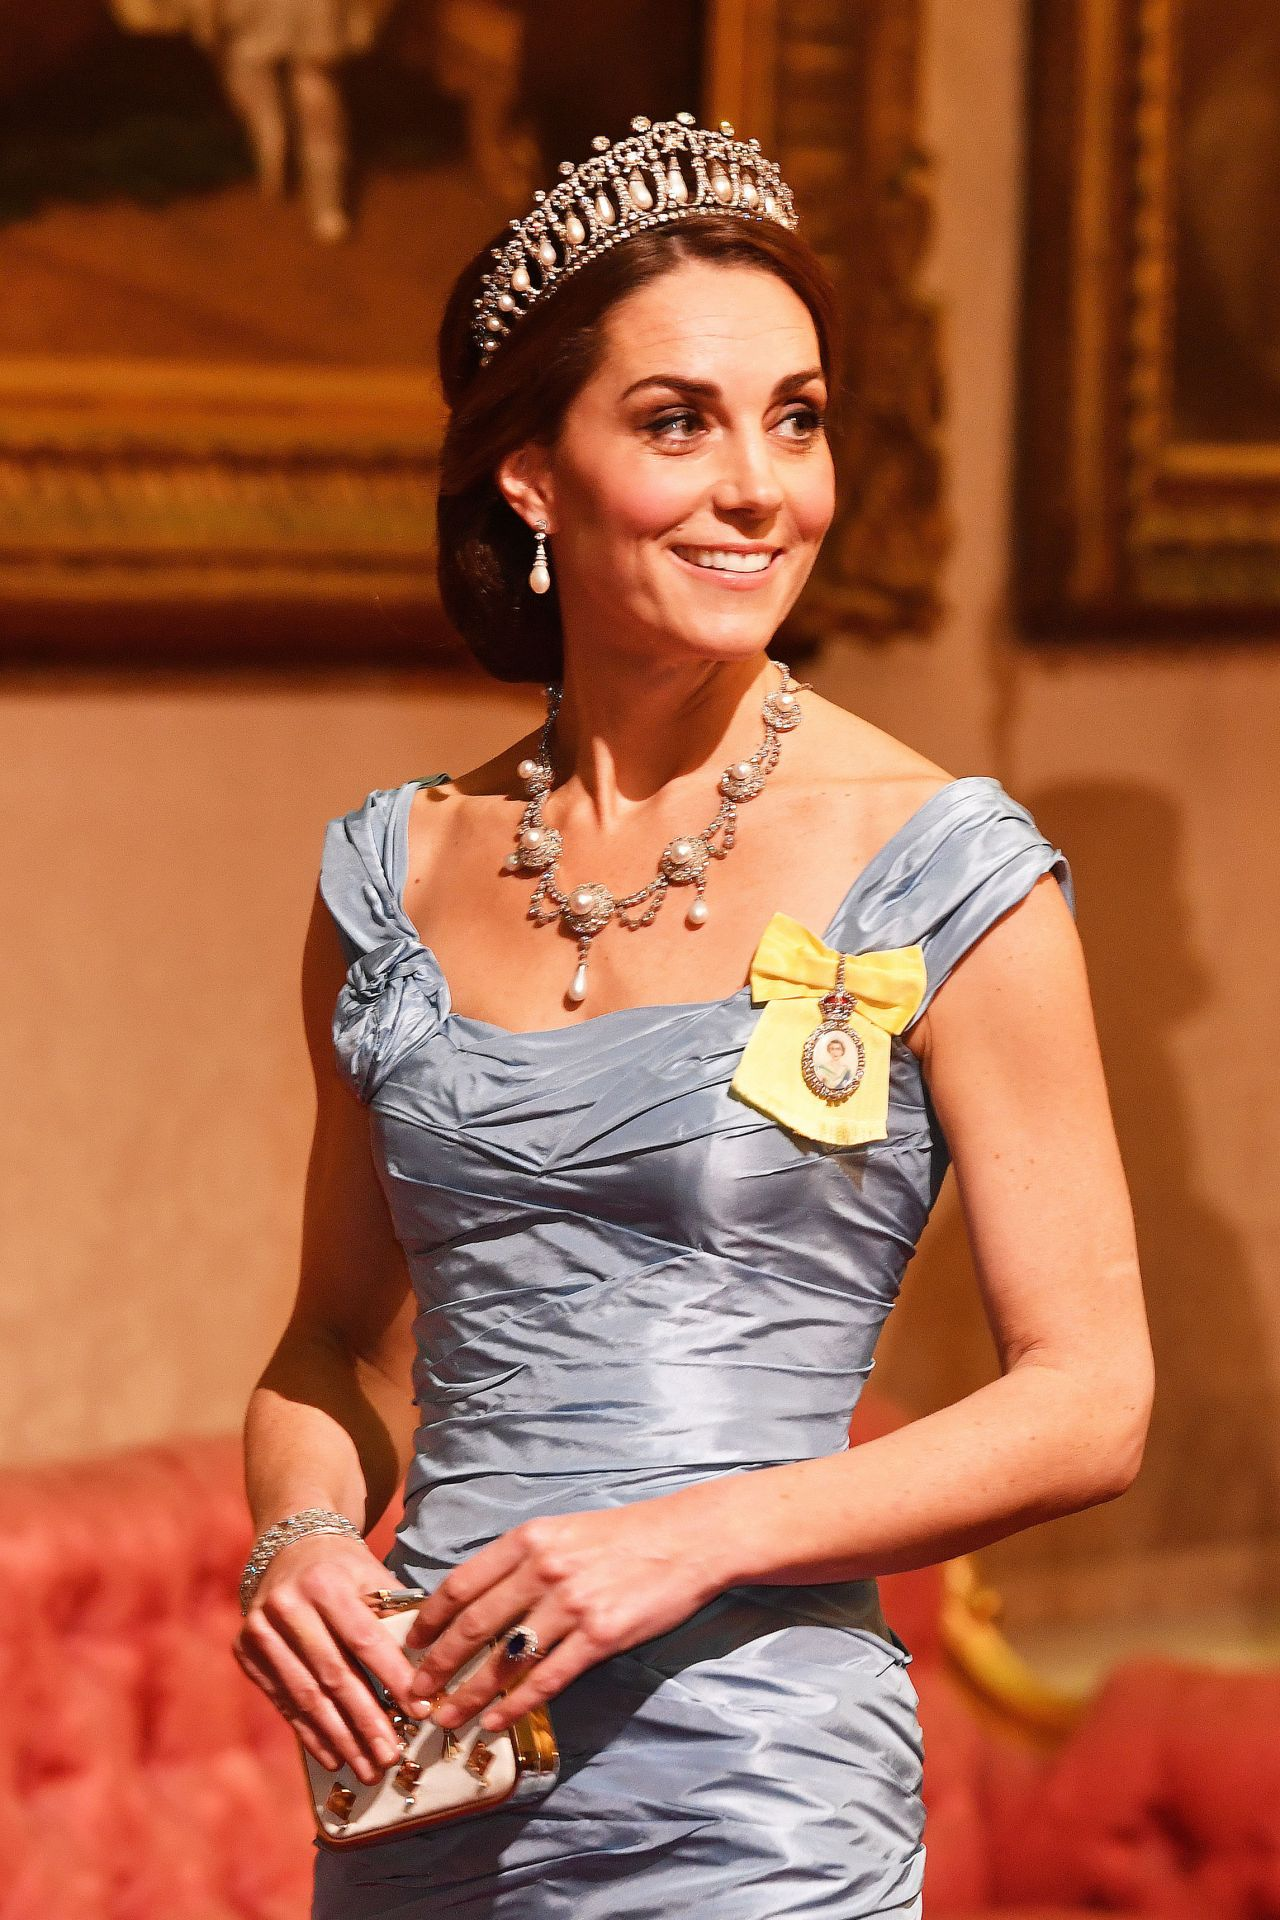 The history behind Kate Middleton's state banquet jewels